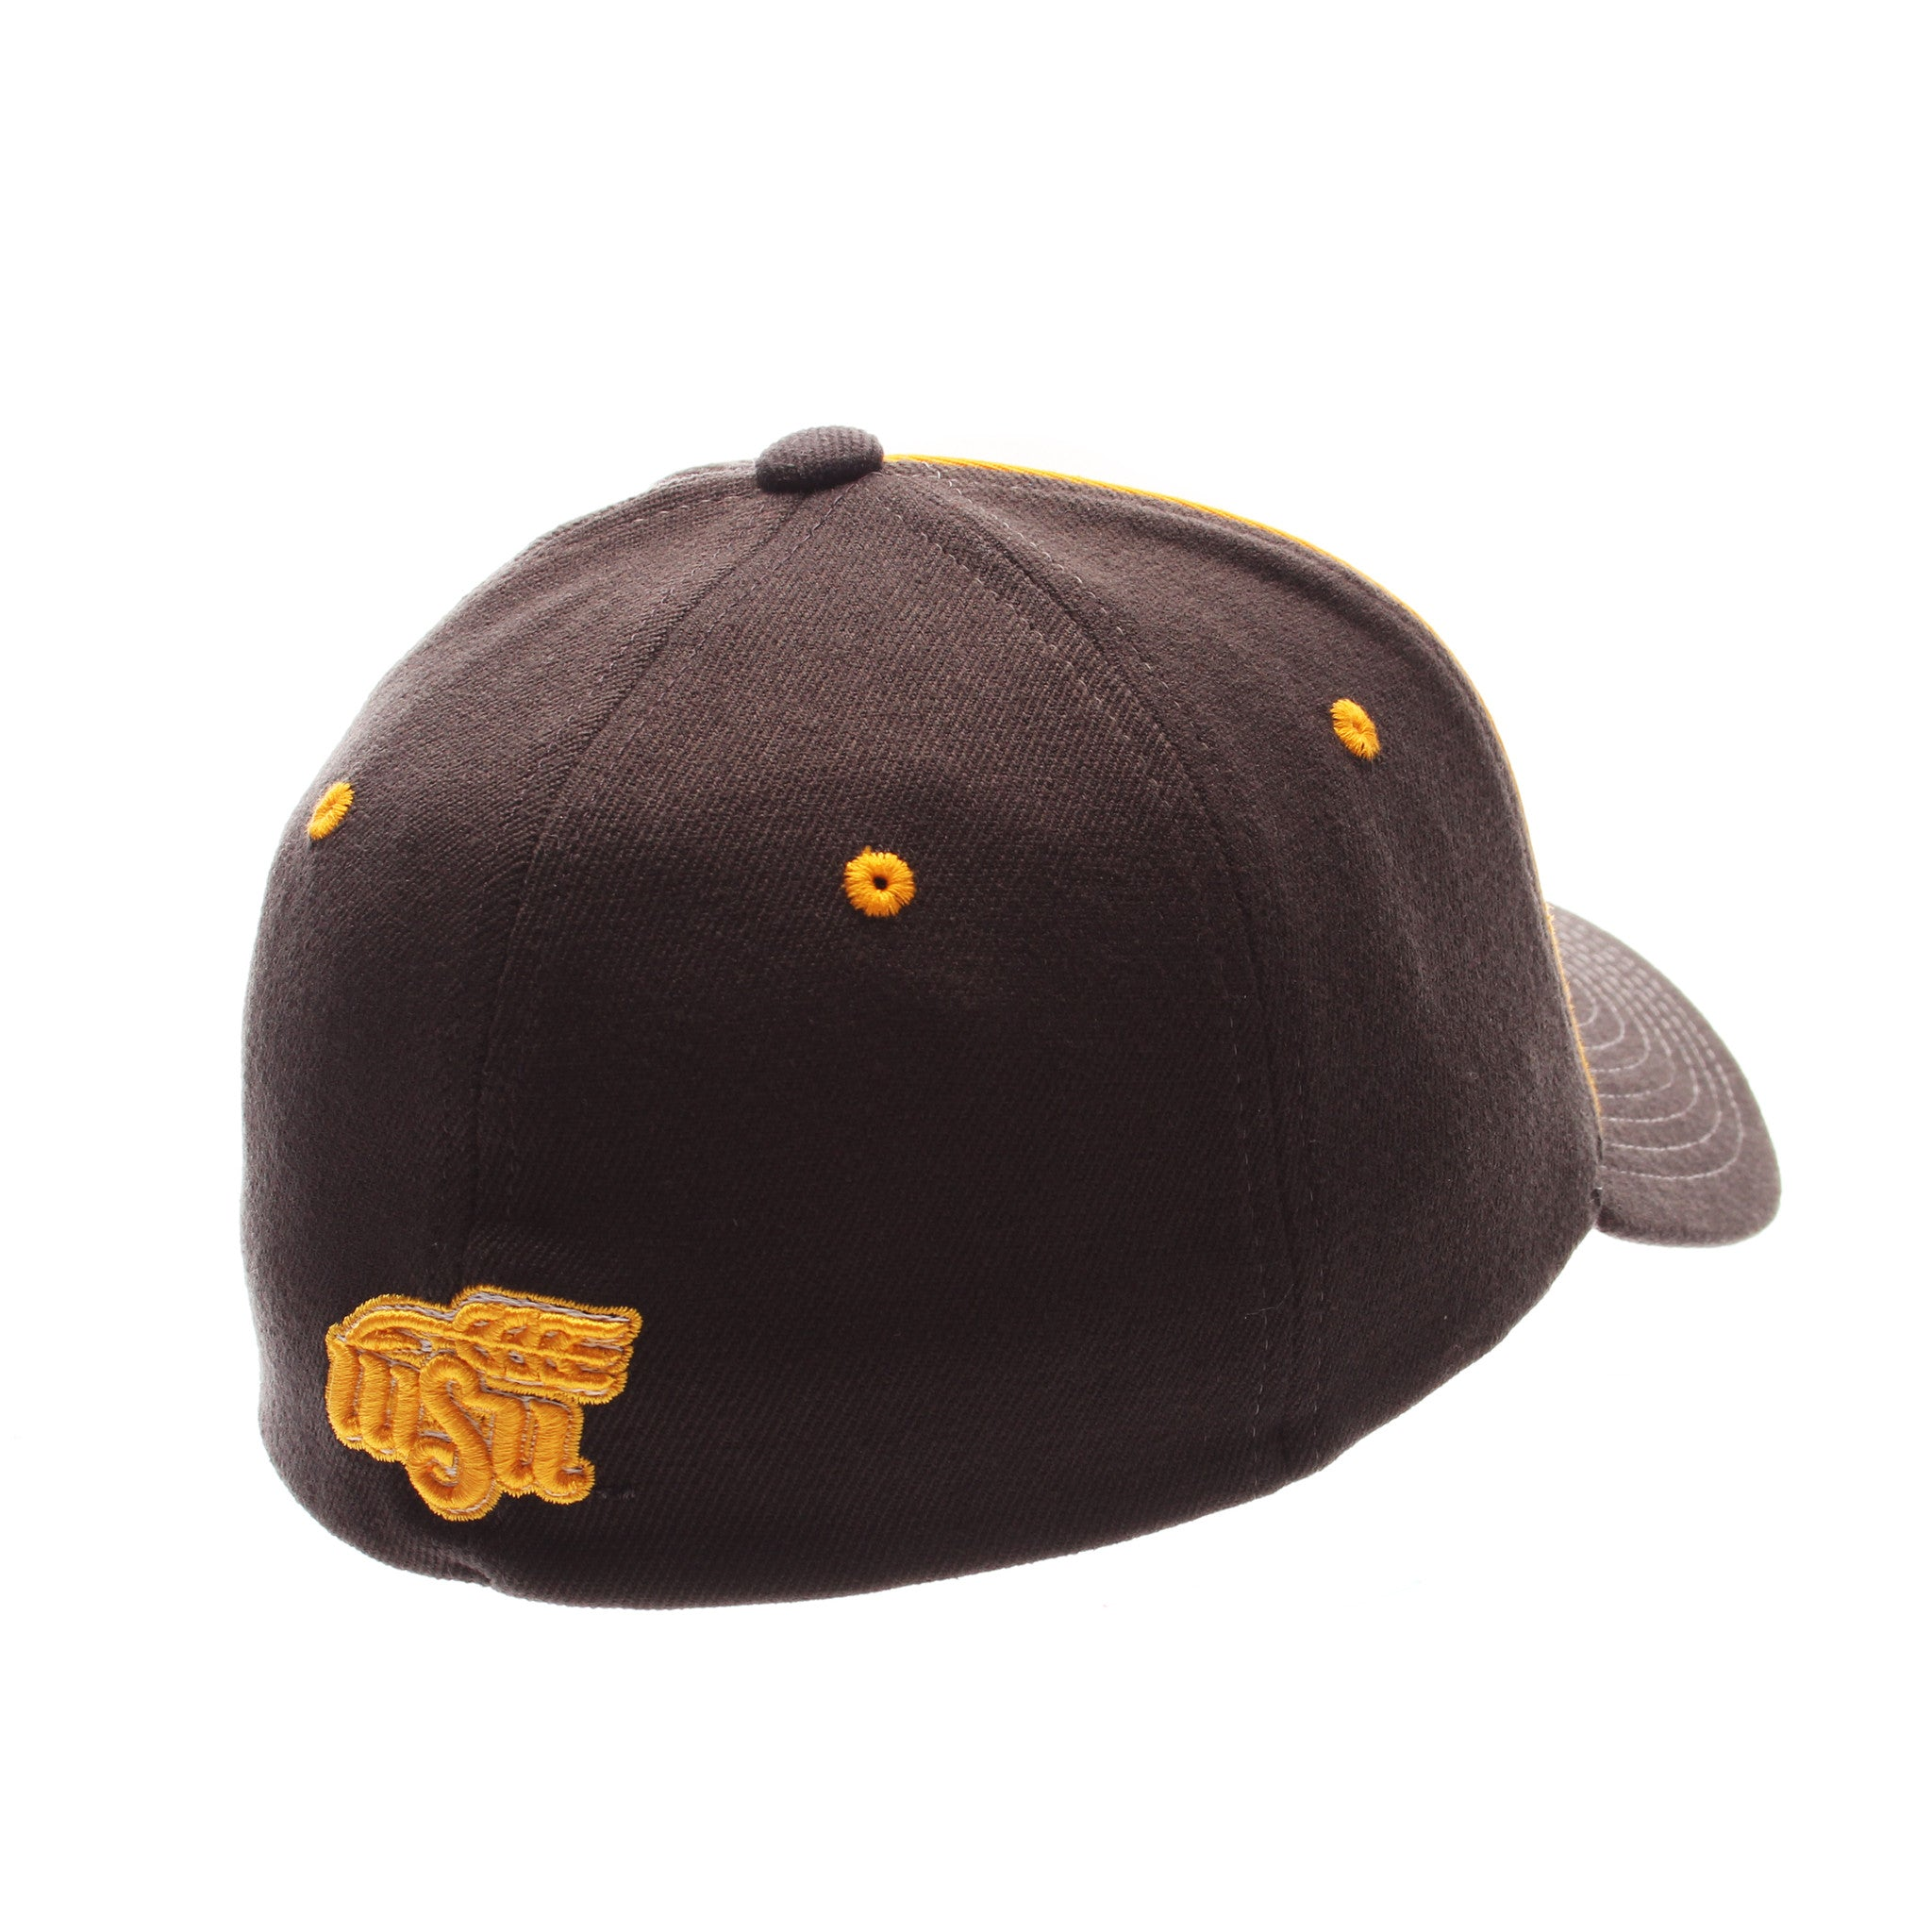 Wichita State University Custom Zfit Standard (Low) (SHOCKER) Varied Colors Varied Panels Stretch Fit hats by Zephyr